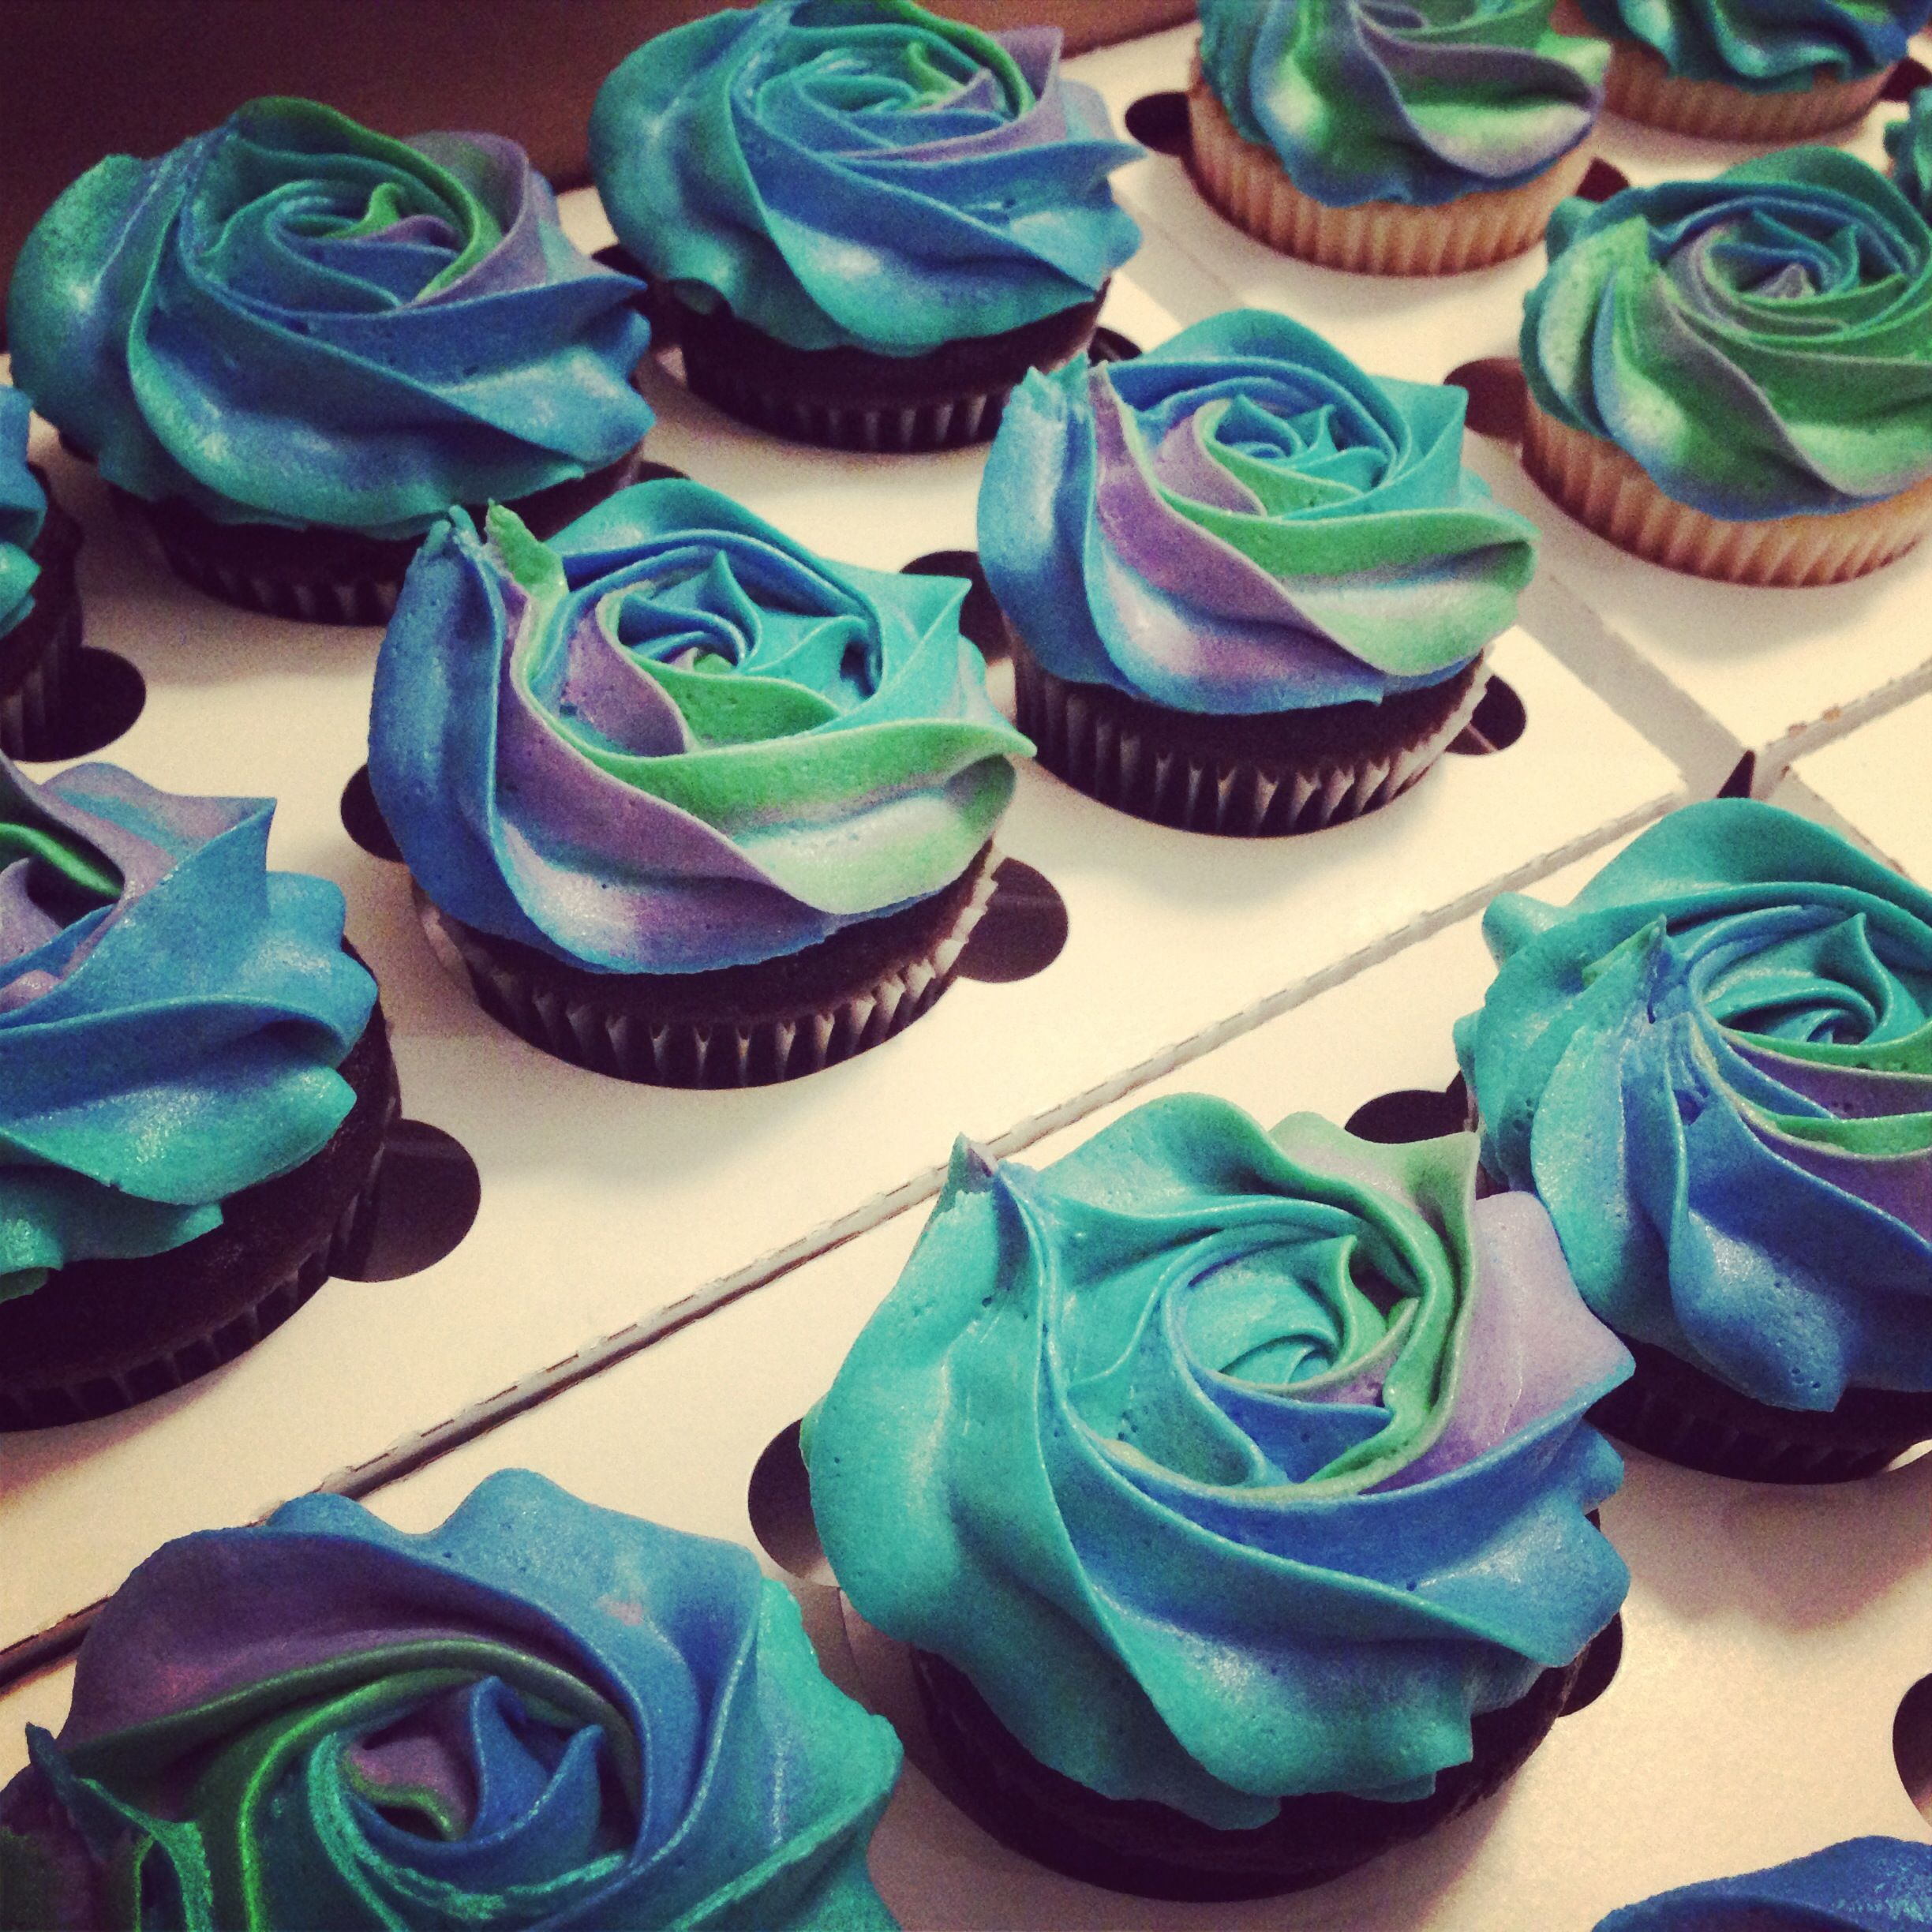 Painted Couple Peacock Wedding Gifts Unique Delicate Home: Peacock Color Cupcakes